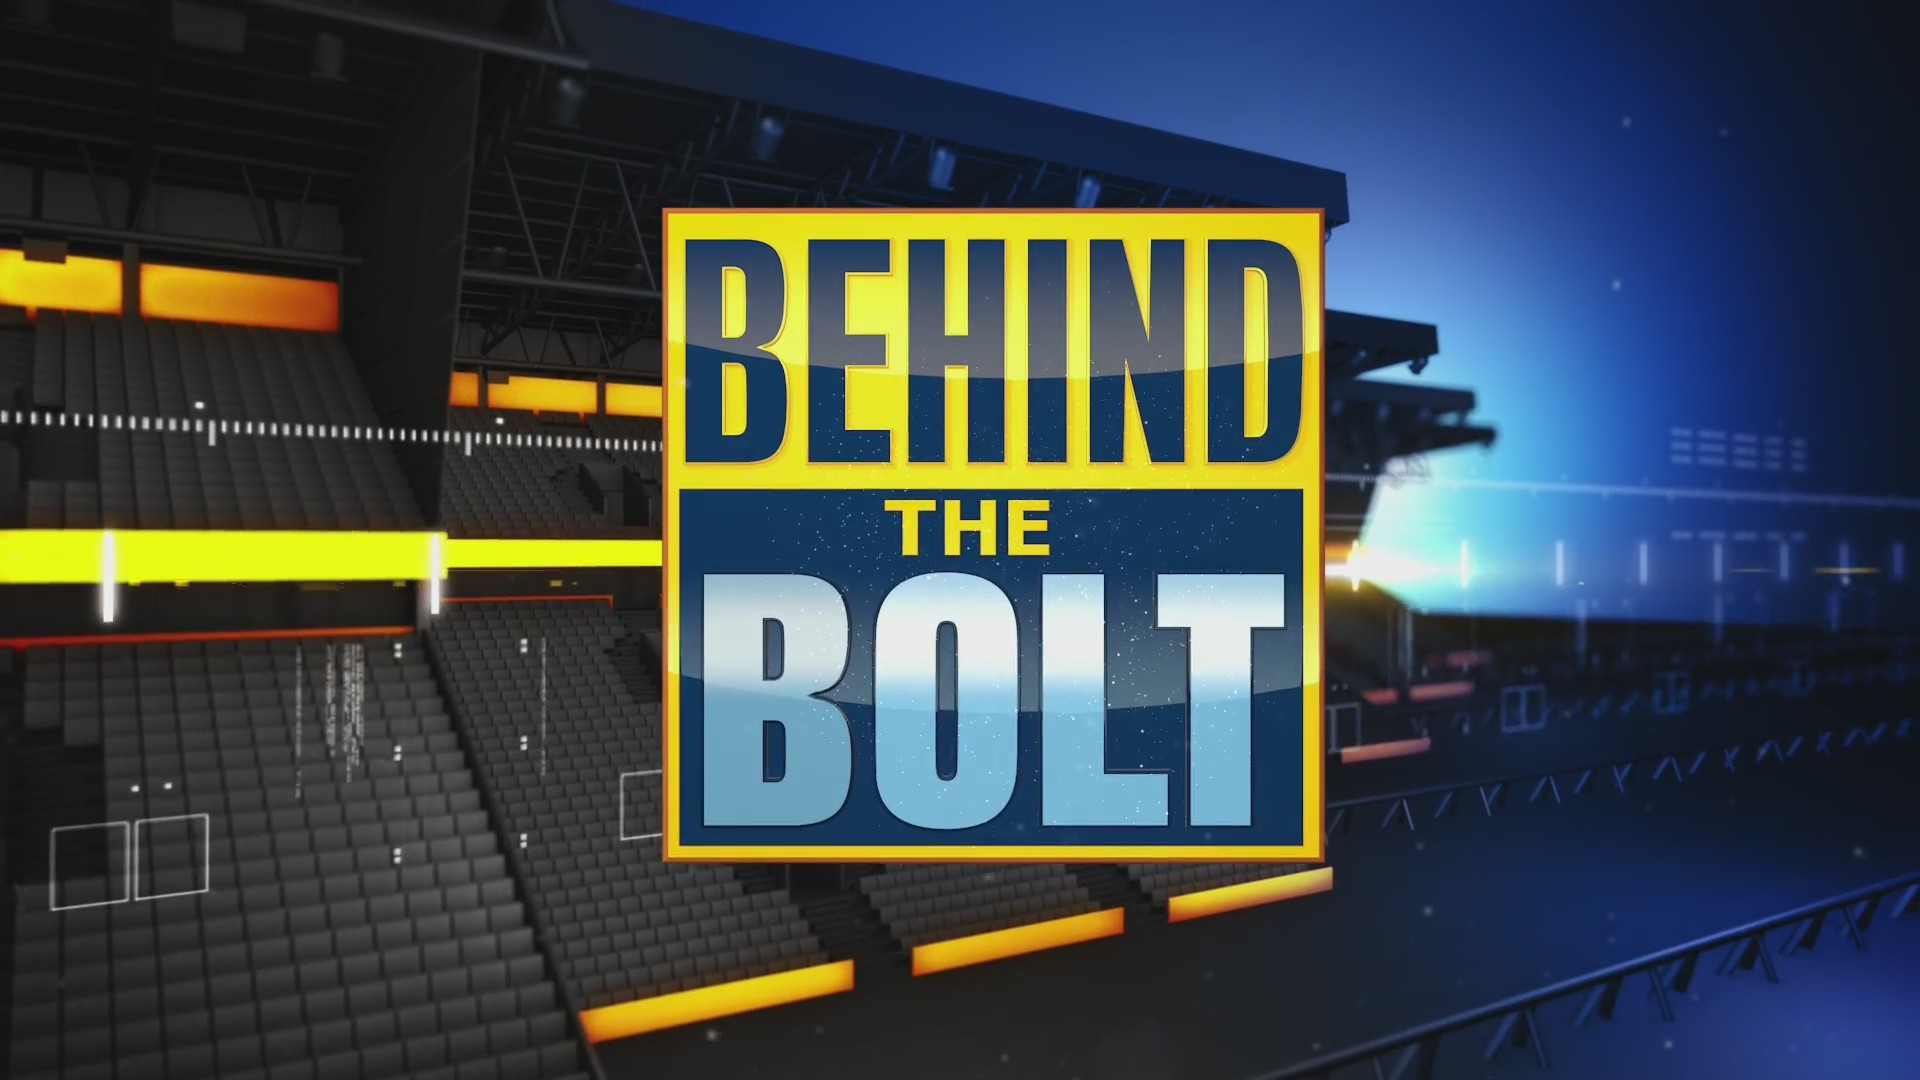 Behind the Bolt